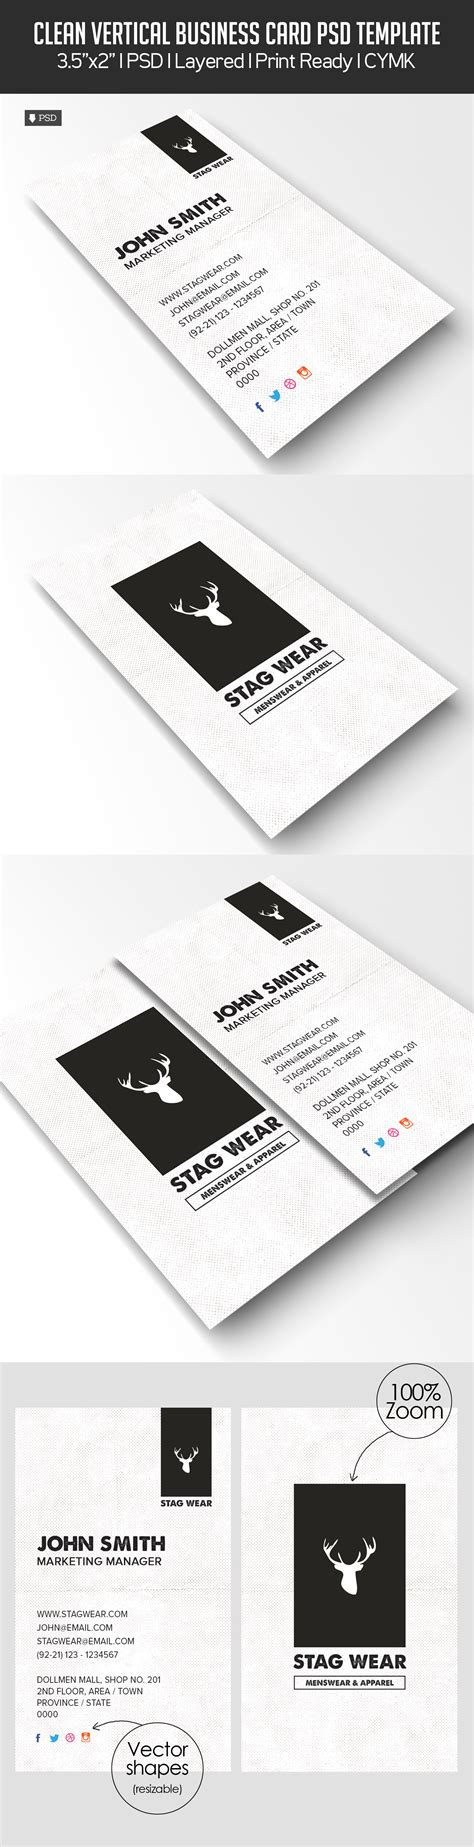 Moo Free Business Card Template Vertical by Free Business Card Templates Vertical Choice Image Card